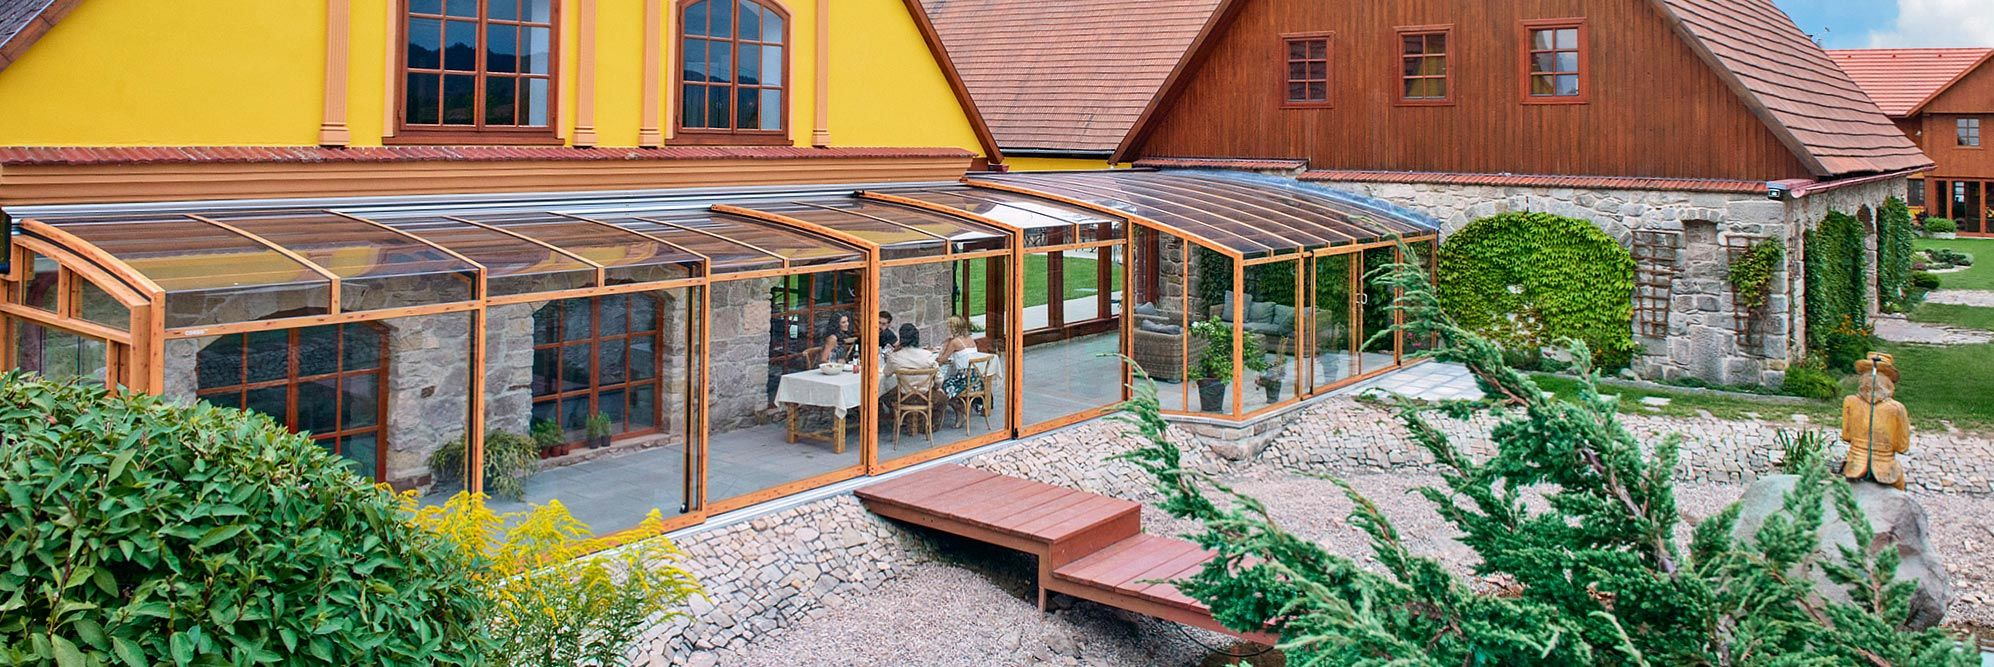 Closed patio enclosure CORSO Premium